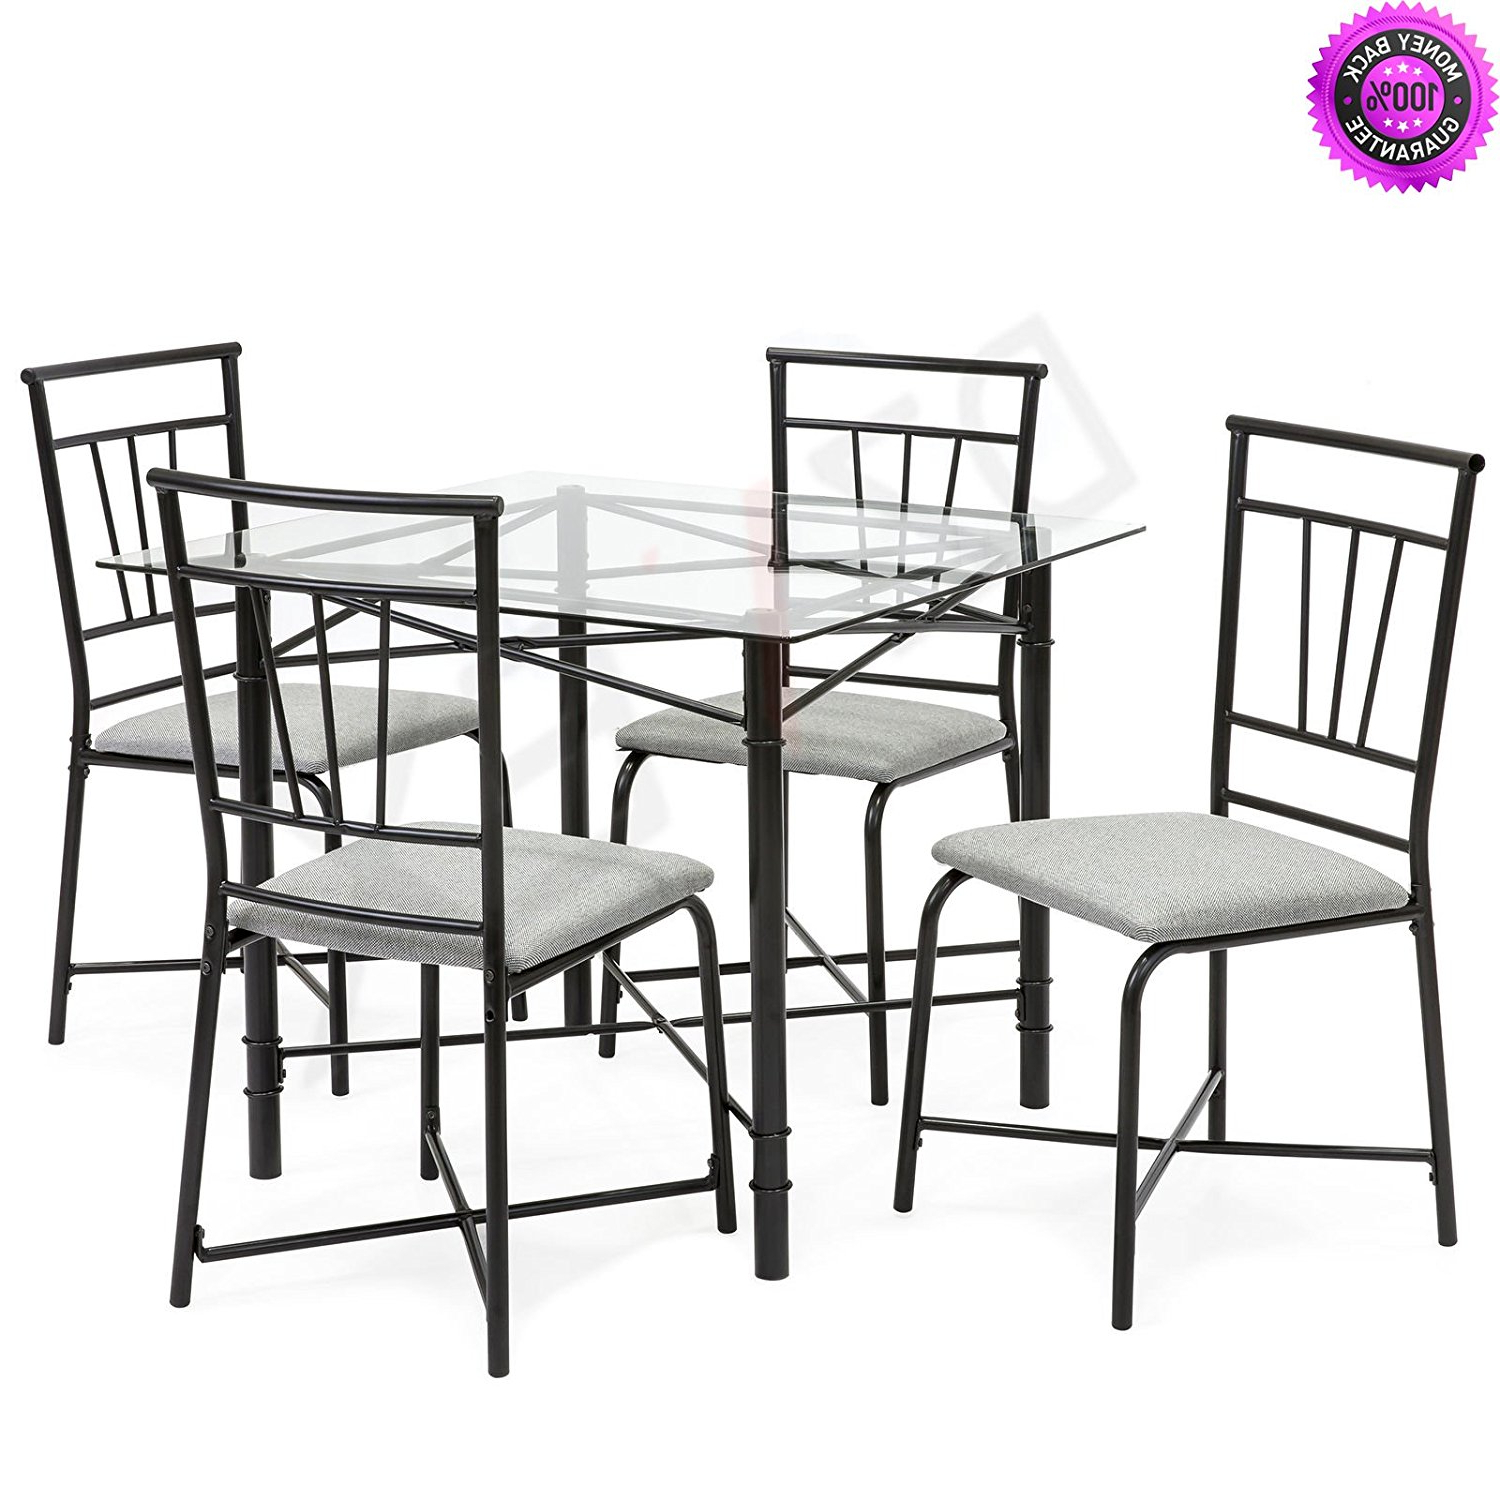 Most Recent Transitional 4 Seating Square Casual Dining Tables Throughout Cheap Round Dining Tables Sets, Find Round Dining Tables (View 12 of 25)